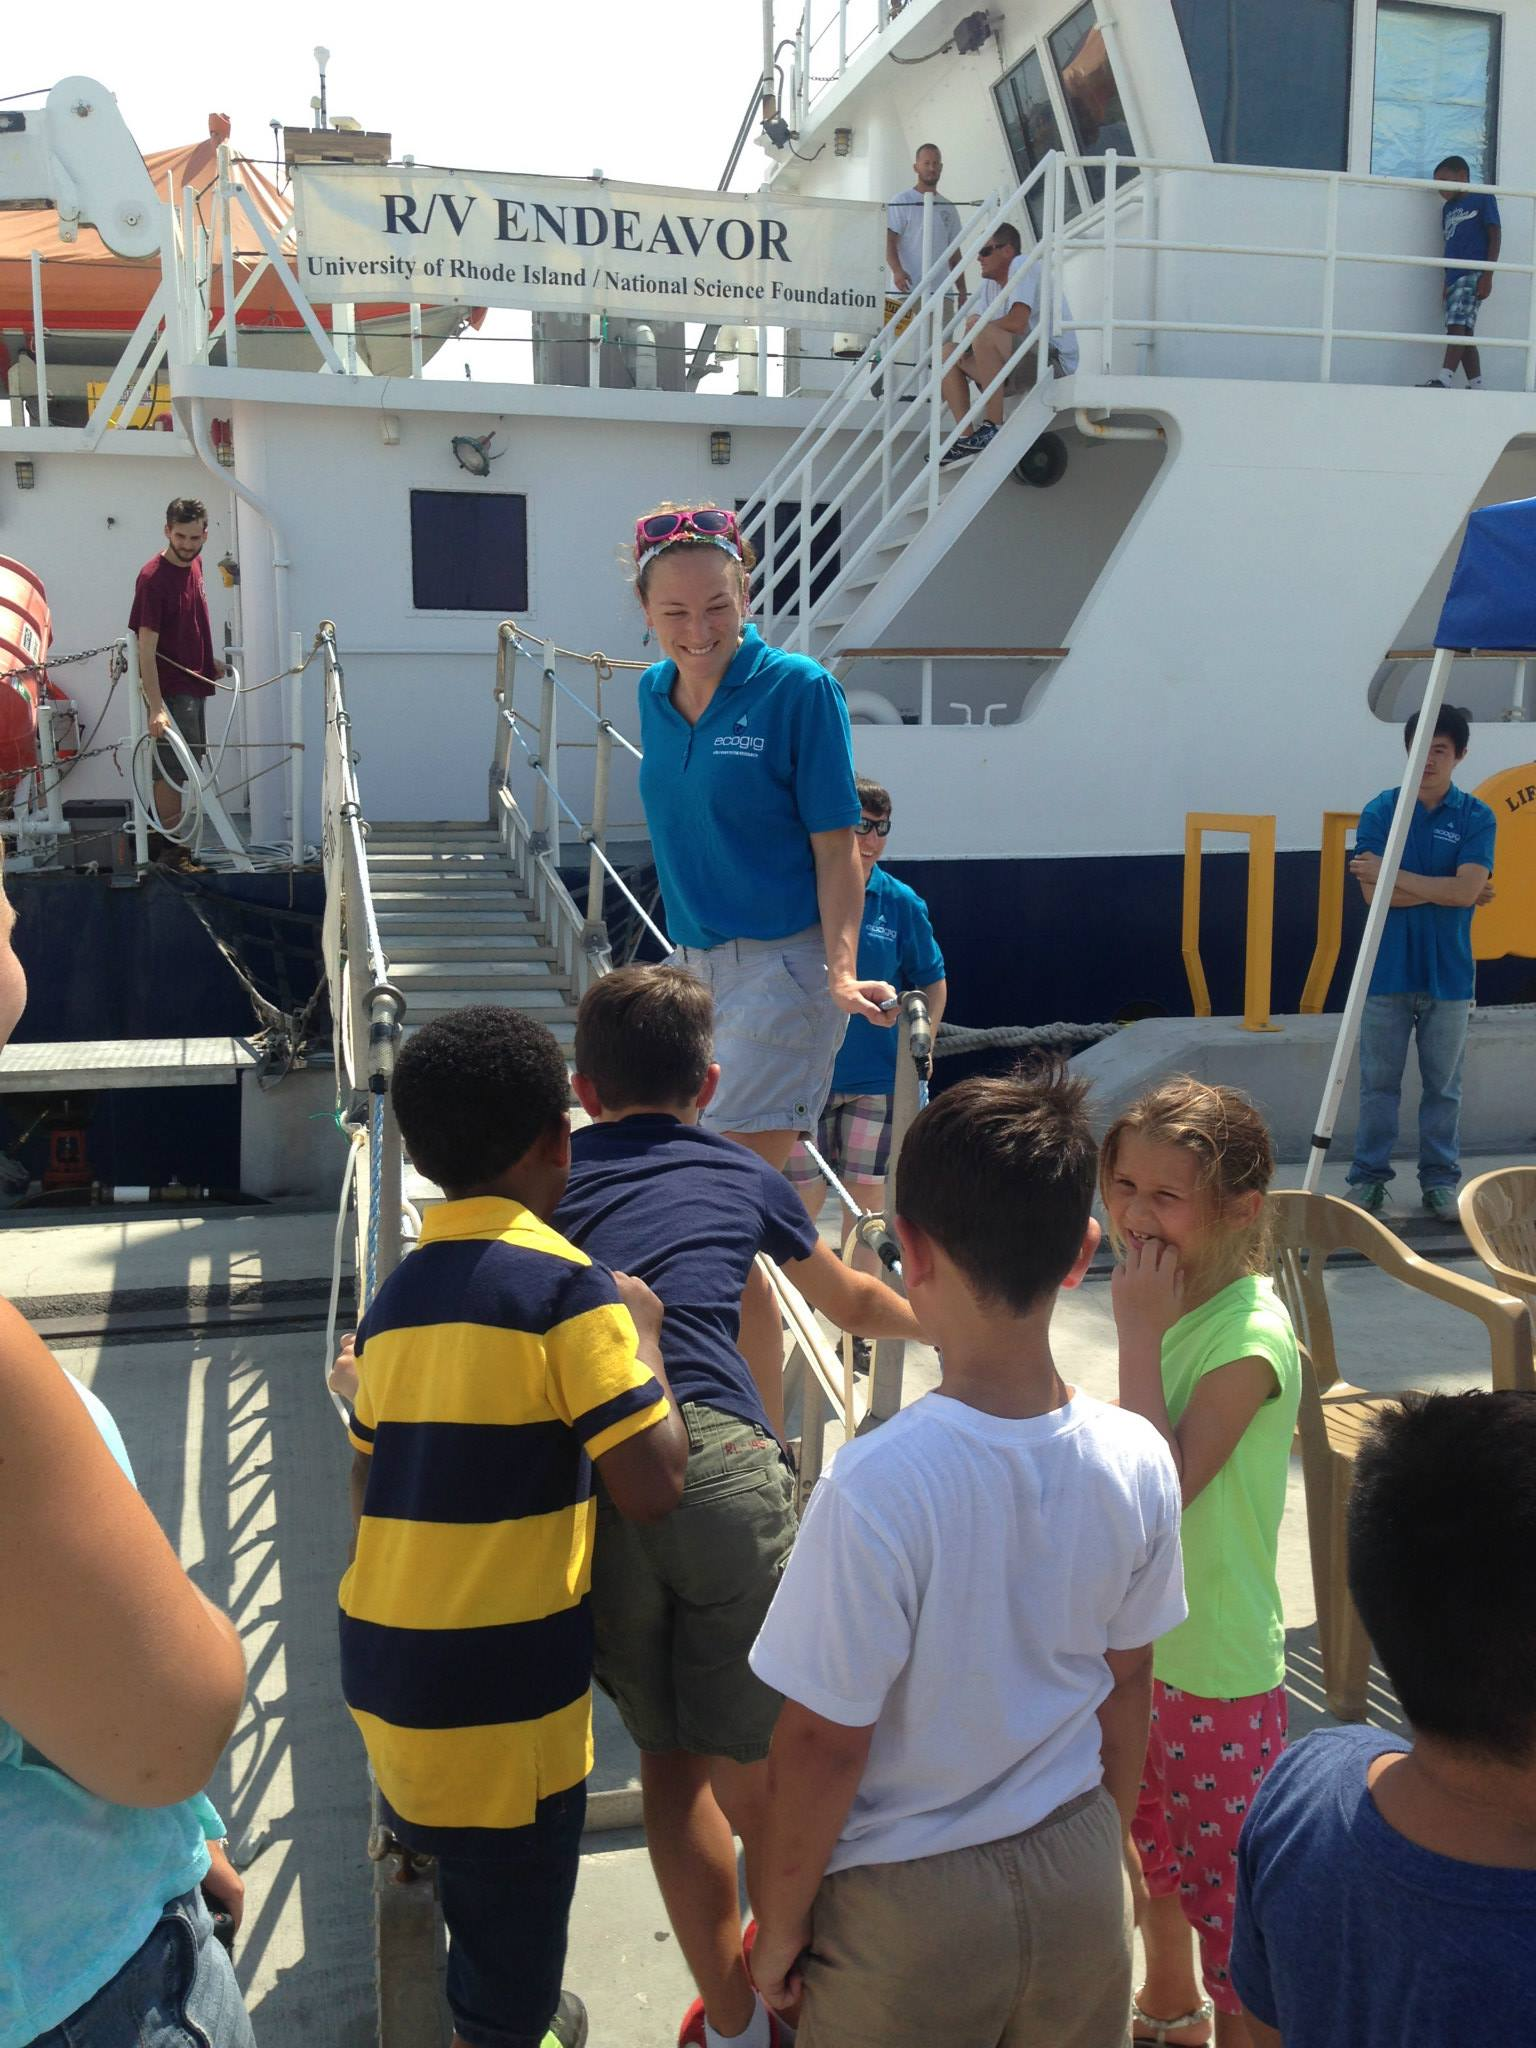 <div style='color:#000000;'><br /><br /><h2>Gulfport, MS Media Day 2015- Boys and Girls club kids tour the R/V Endeavor during World Oceans Day 2015.</h2>(C)&nbsp;ECOGIG</div>